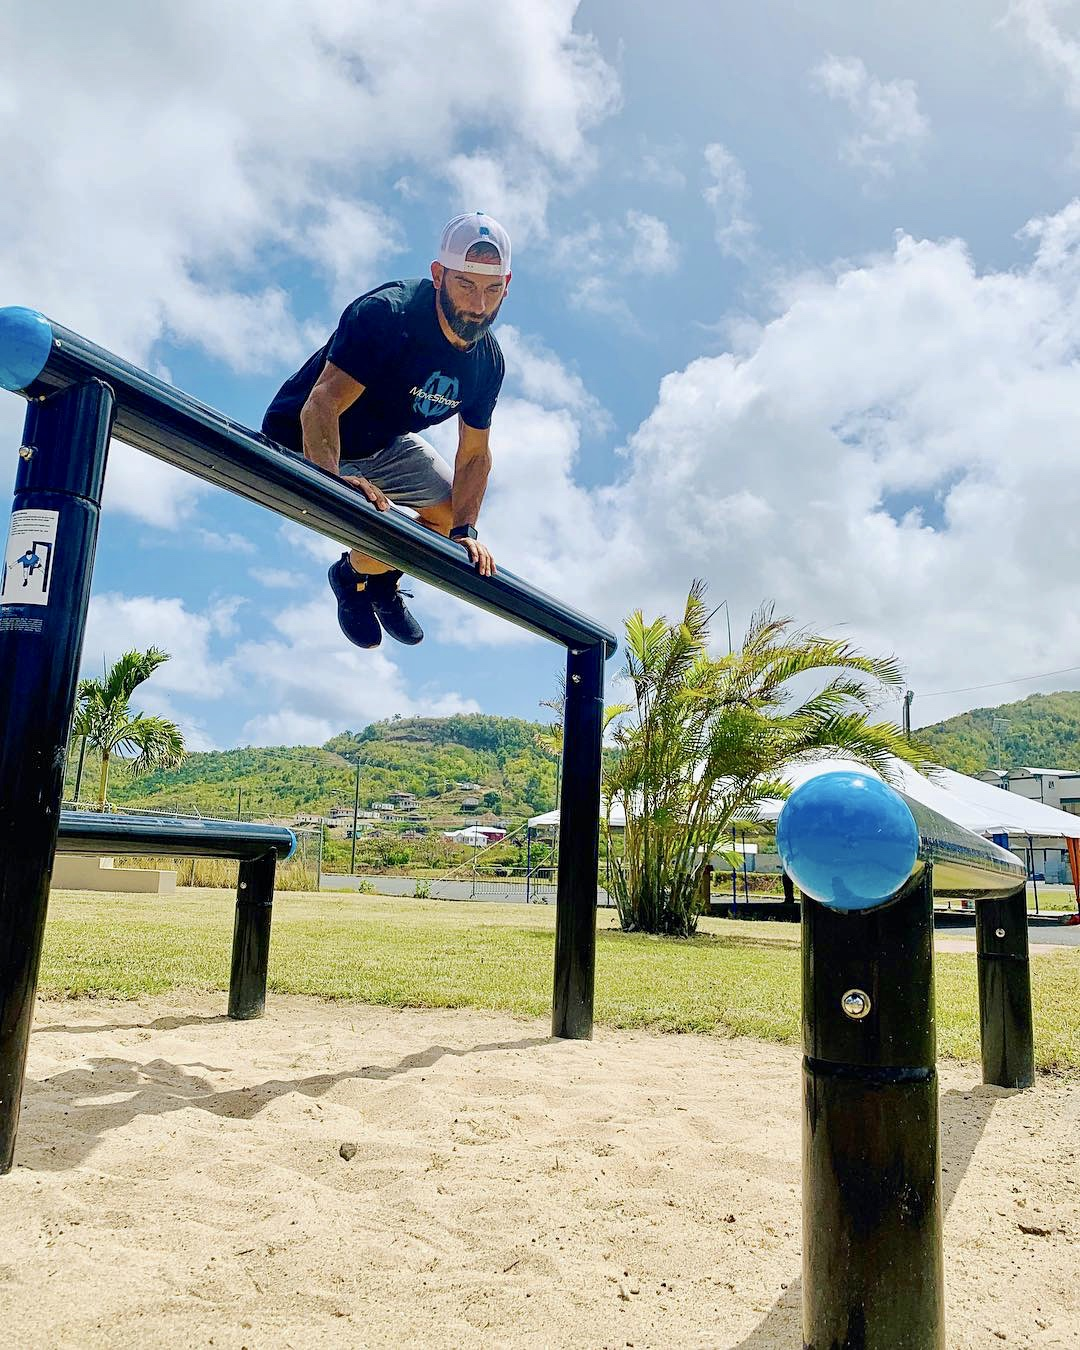 St. Lucia Outdoor Fitness Park